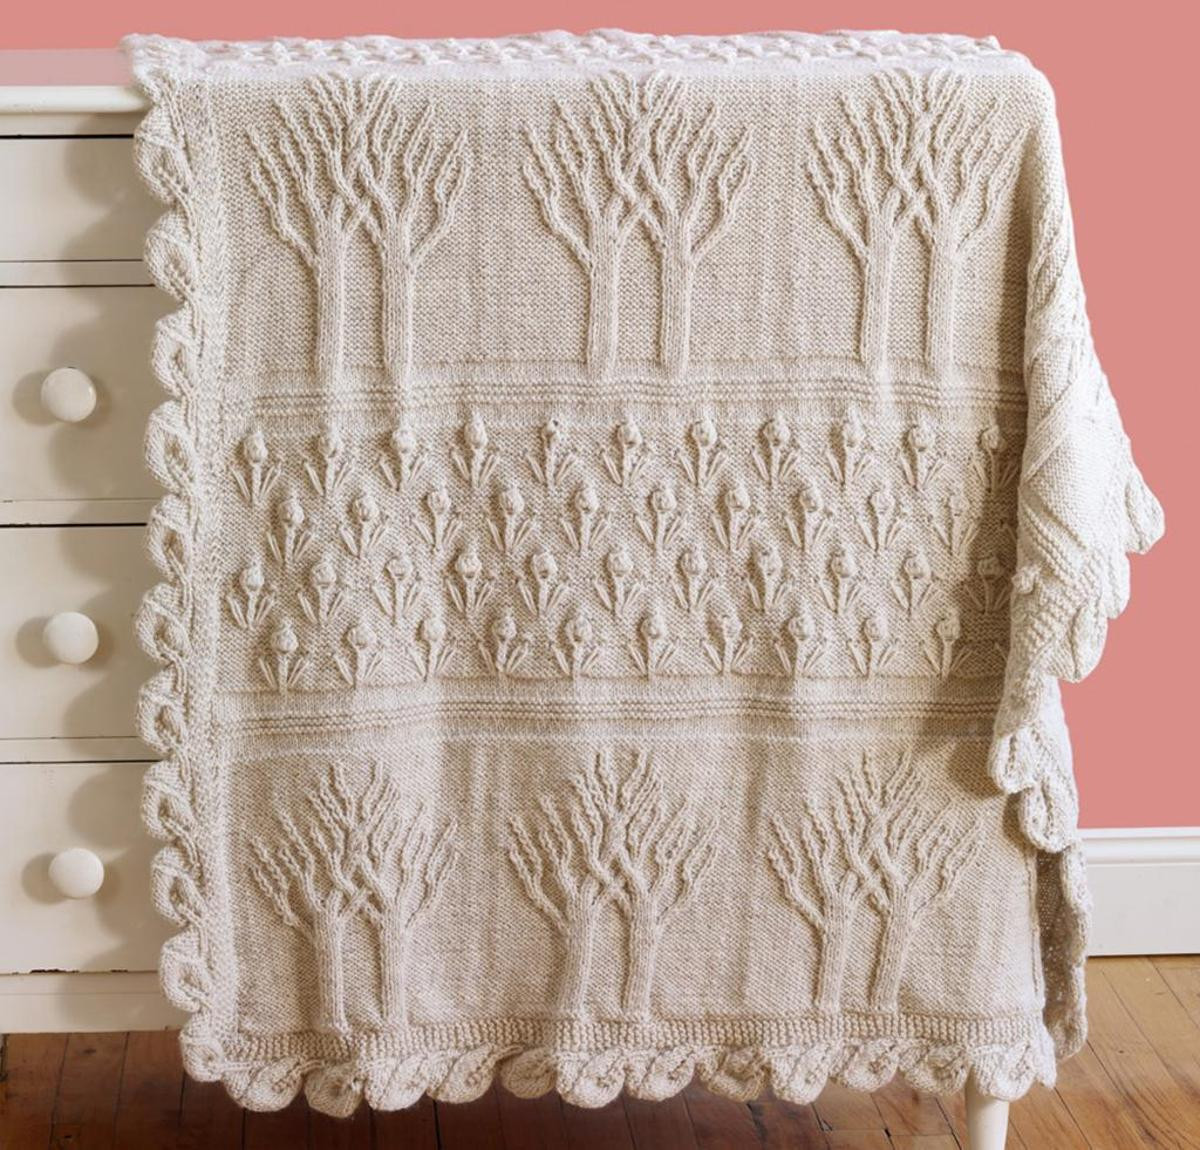 Unique Tree Of Life Afghan Knitting Kit Blanket Knitting Kit Of Lovely 47 Models Blanket Knitting Kit